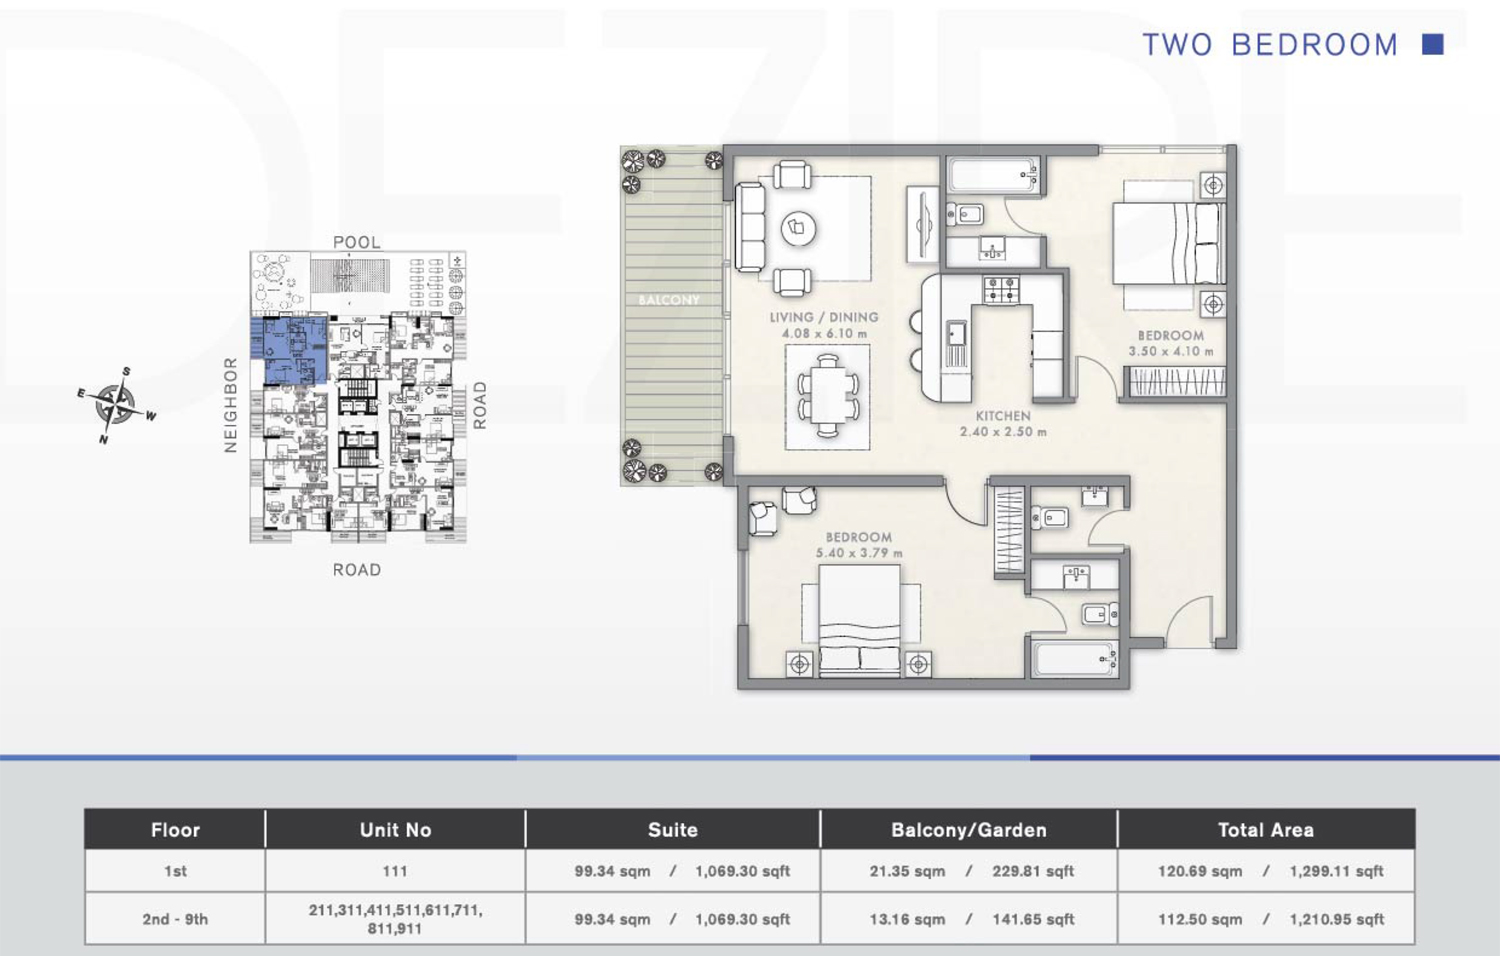 2 Bedroom Floor Plan 2